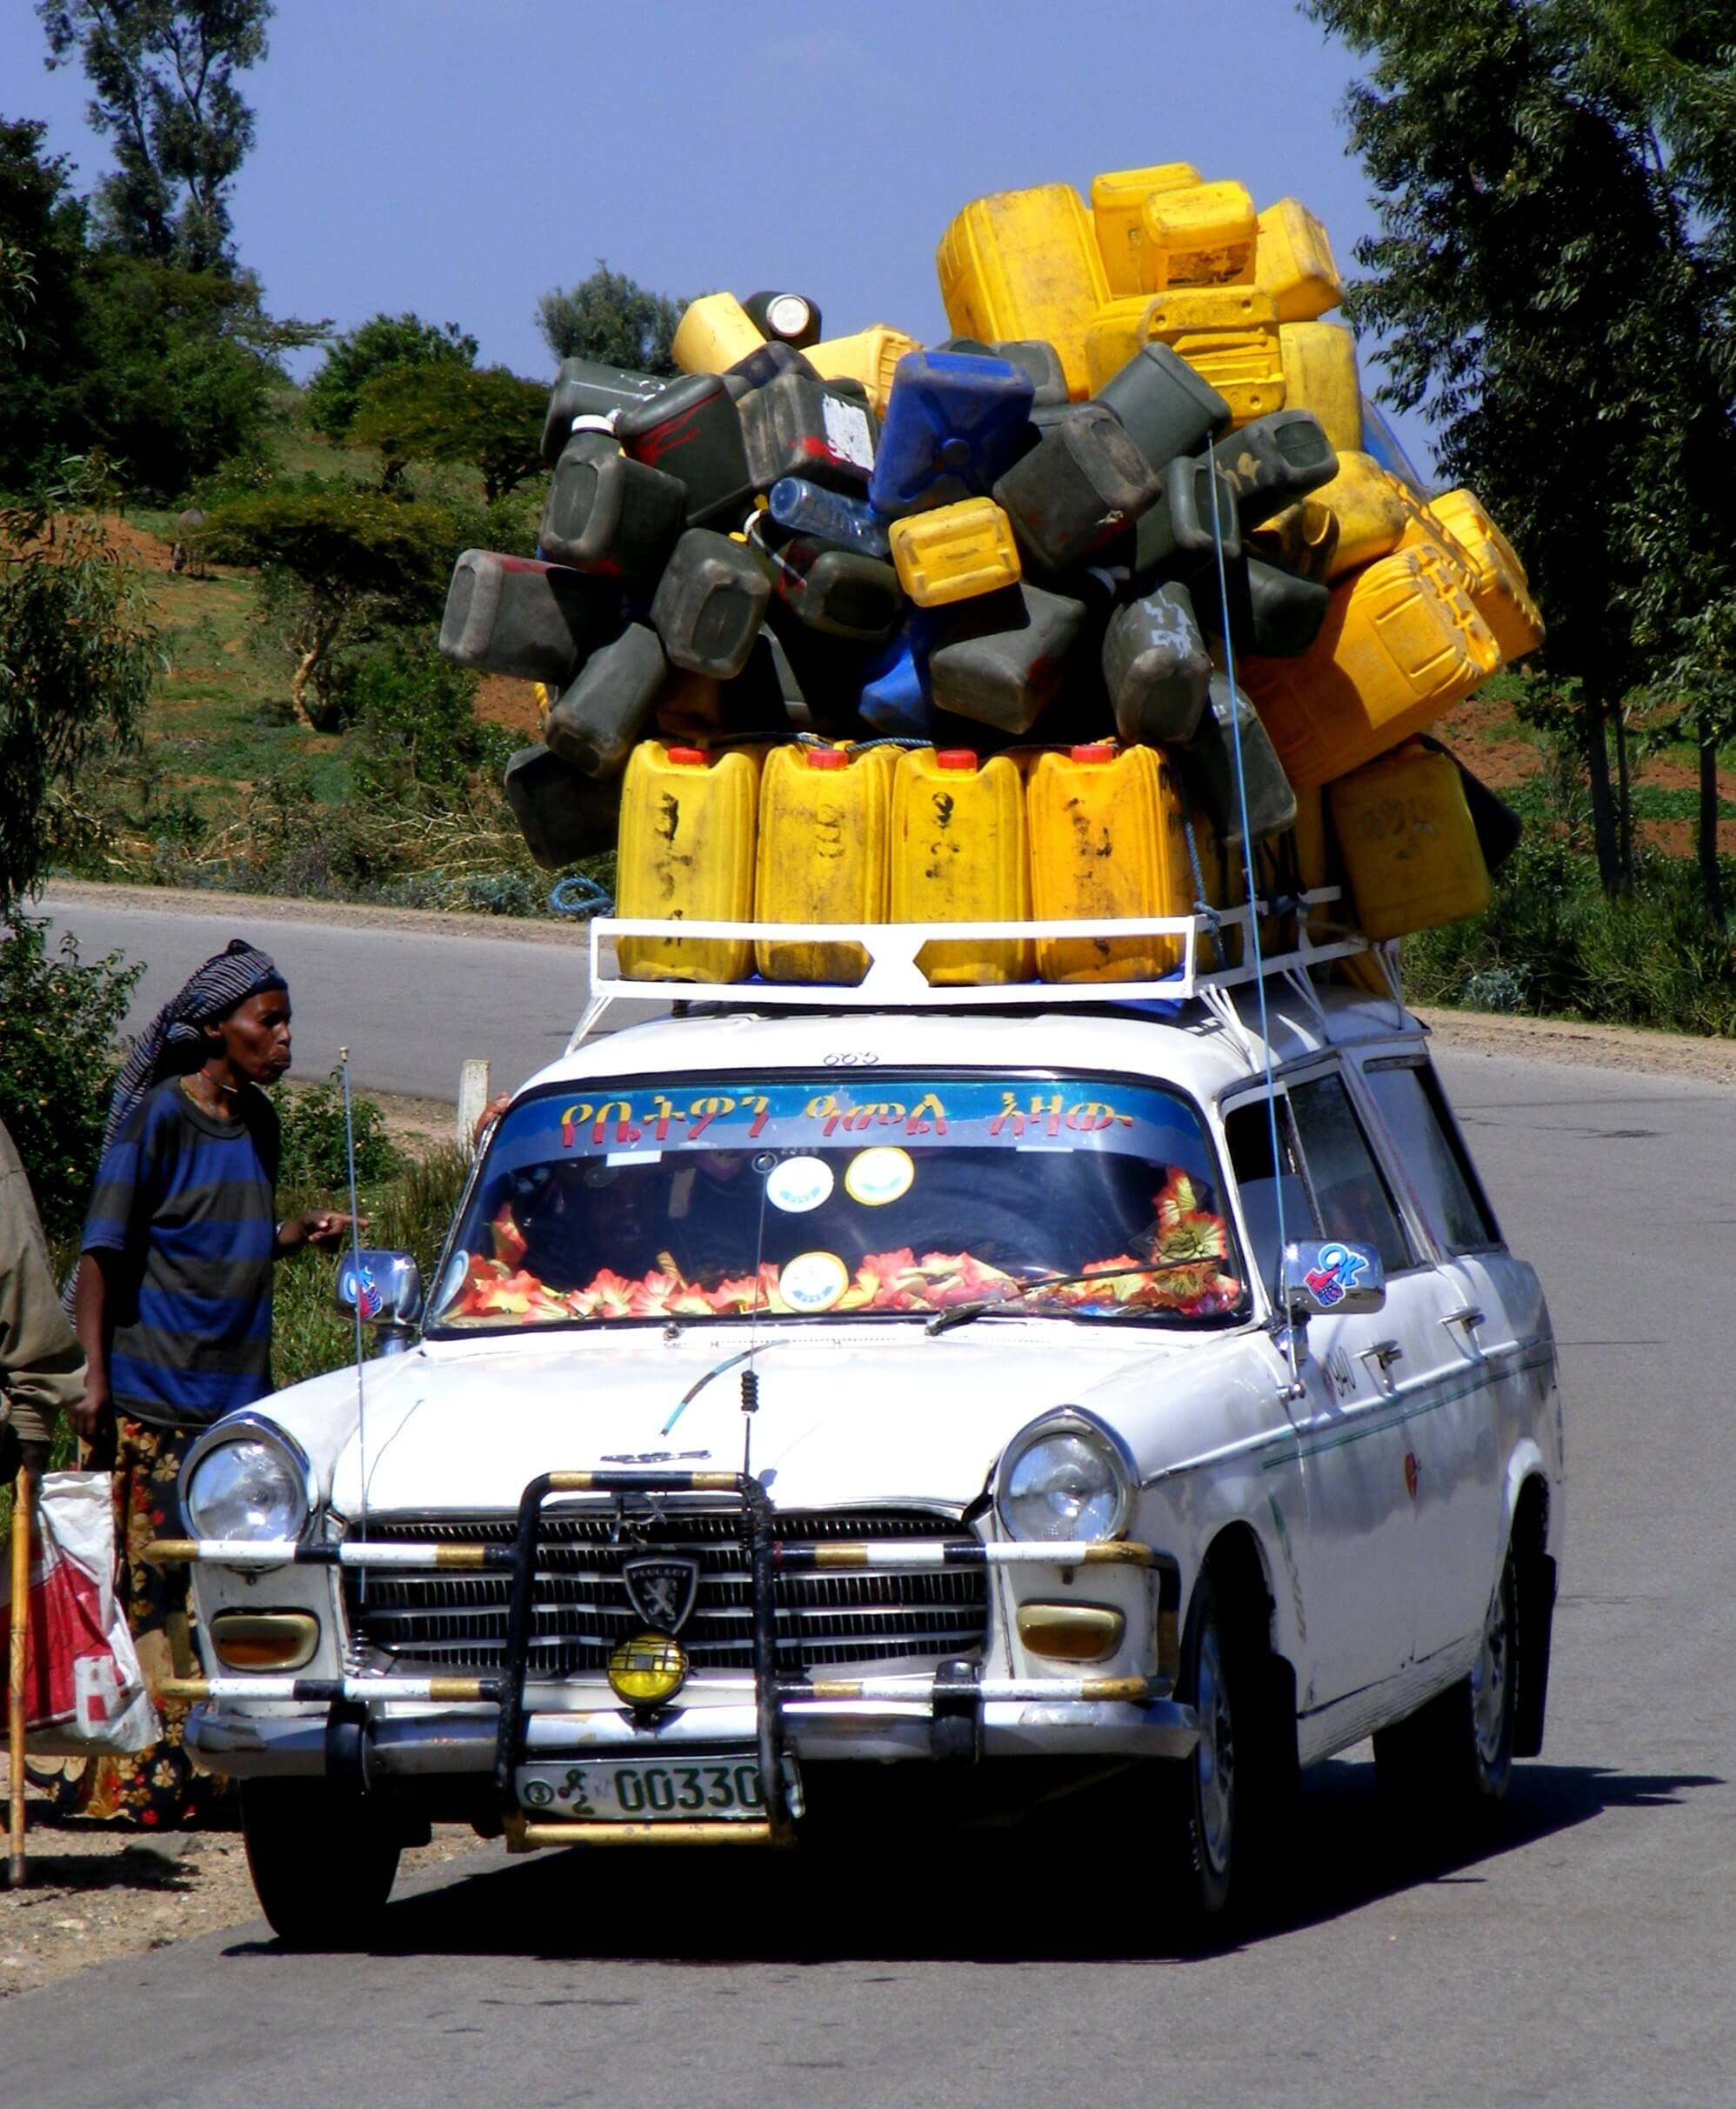 loaded car, transport, jerrycan, yellow, Ethiopia